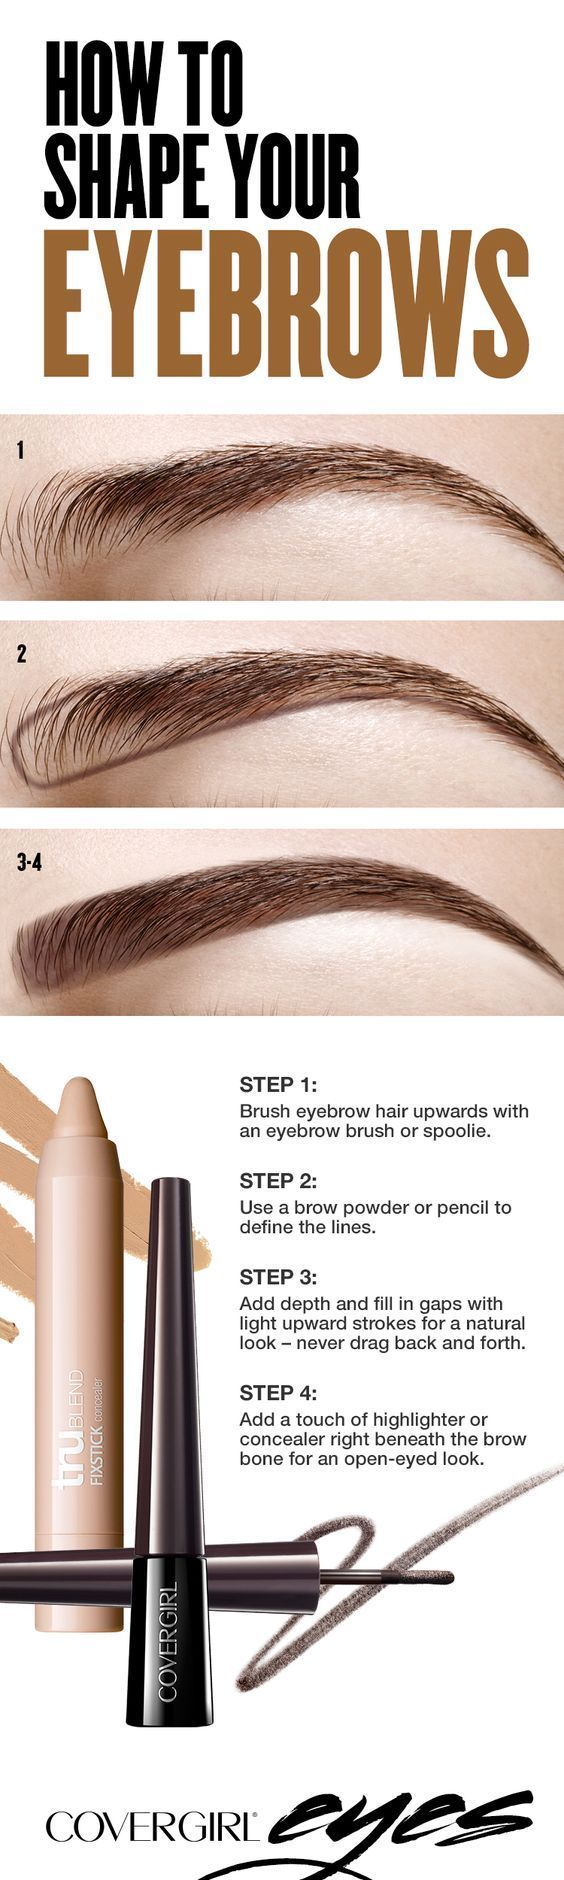 Filling in your eyebrows doesn't have to be a lengthy process. Keep it simple by using a brow powder or pencil to define a bottom